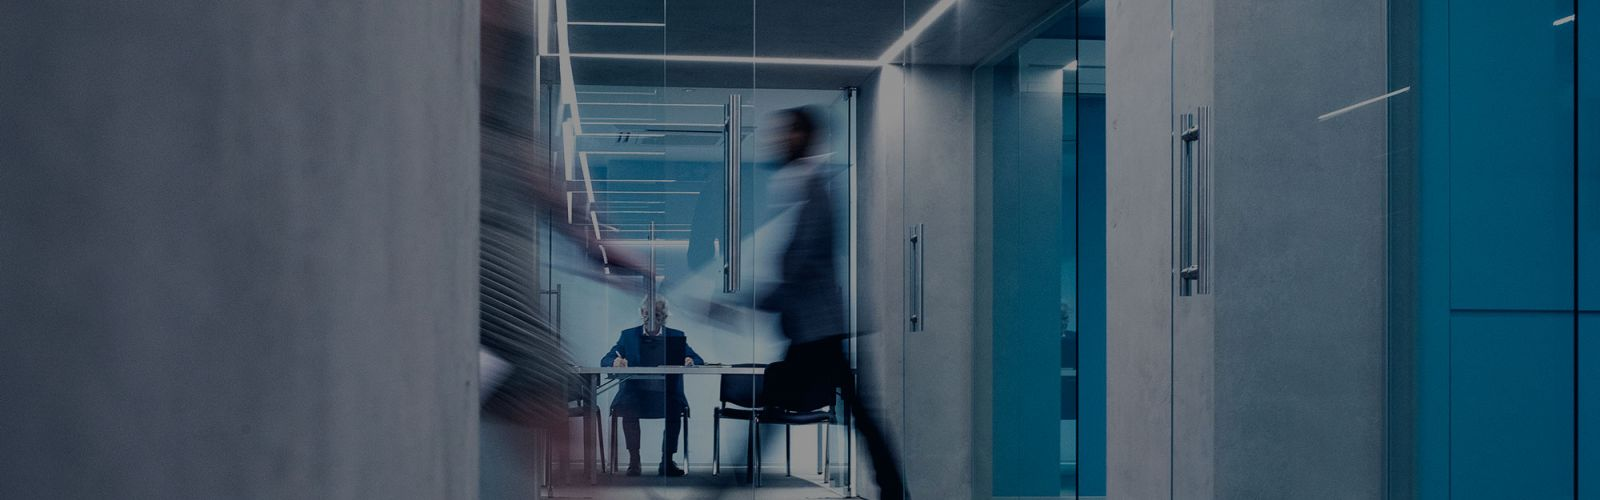 Blurred people walking in office tax governance